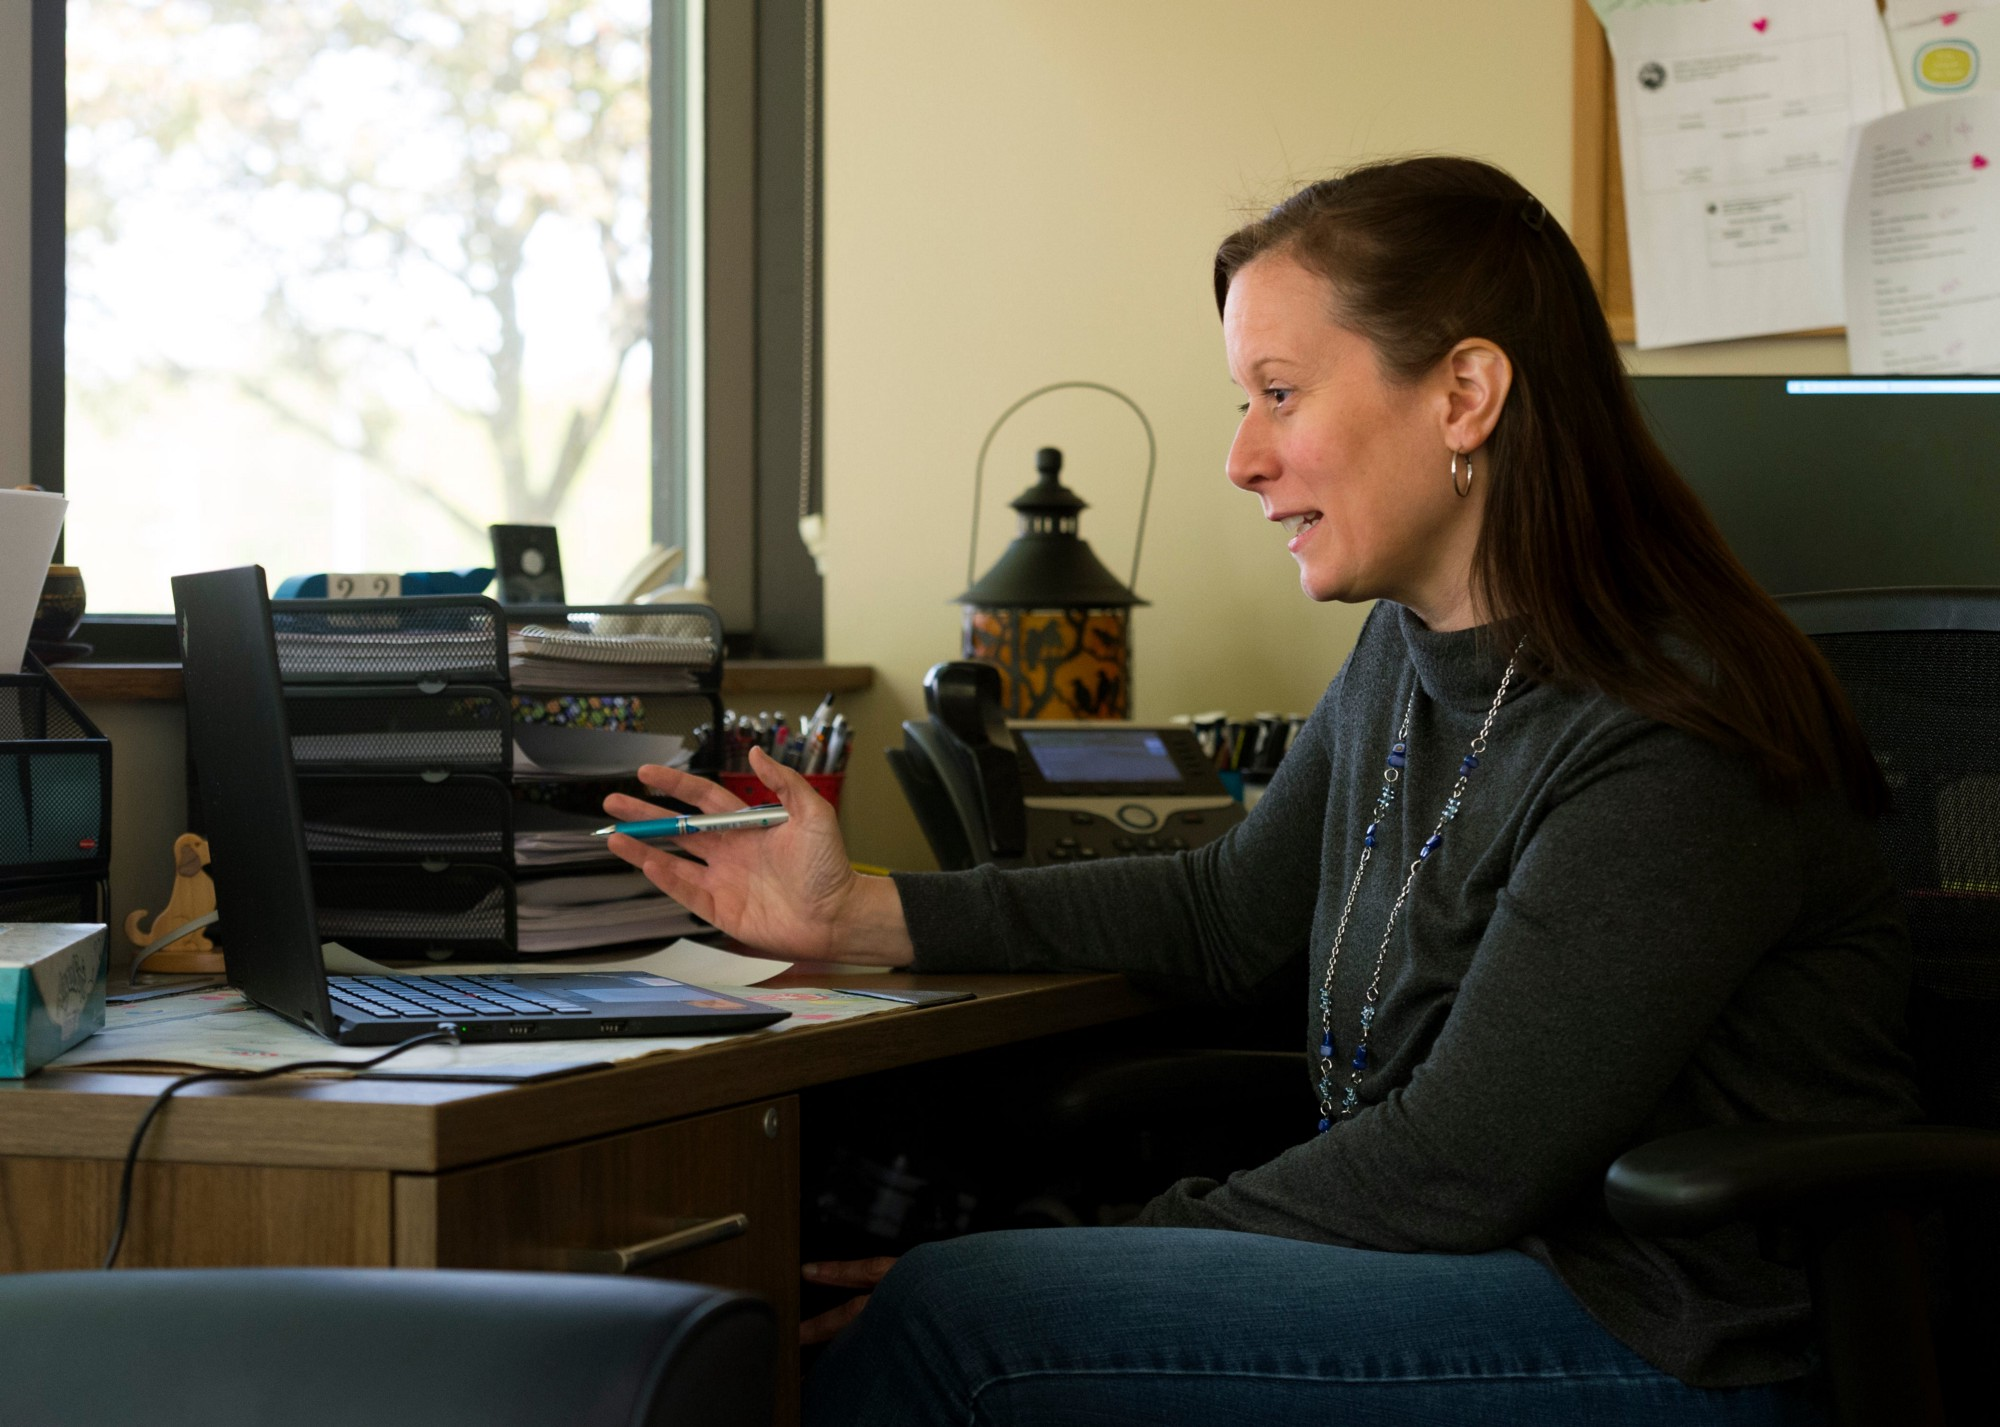 Therapist Heather Guinn conducts a virtual session, April 22, 2020. Photo by MaCabe Brown/Courier & Press/Reuters